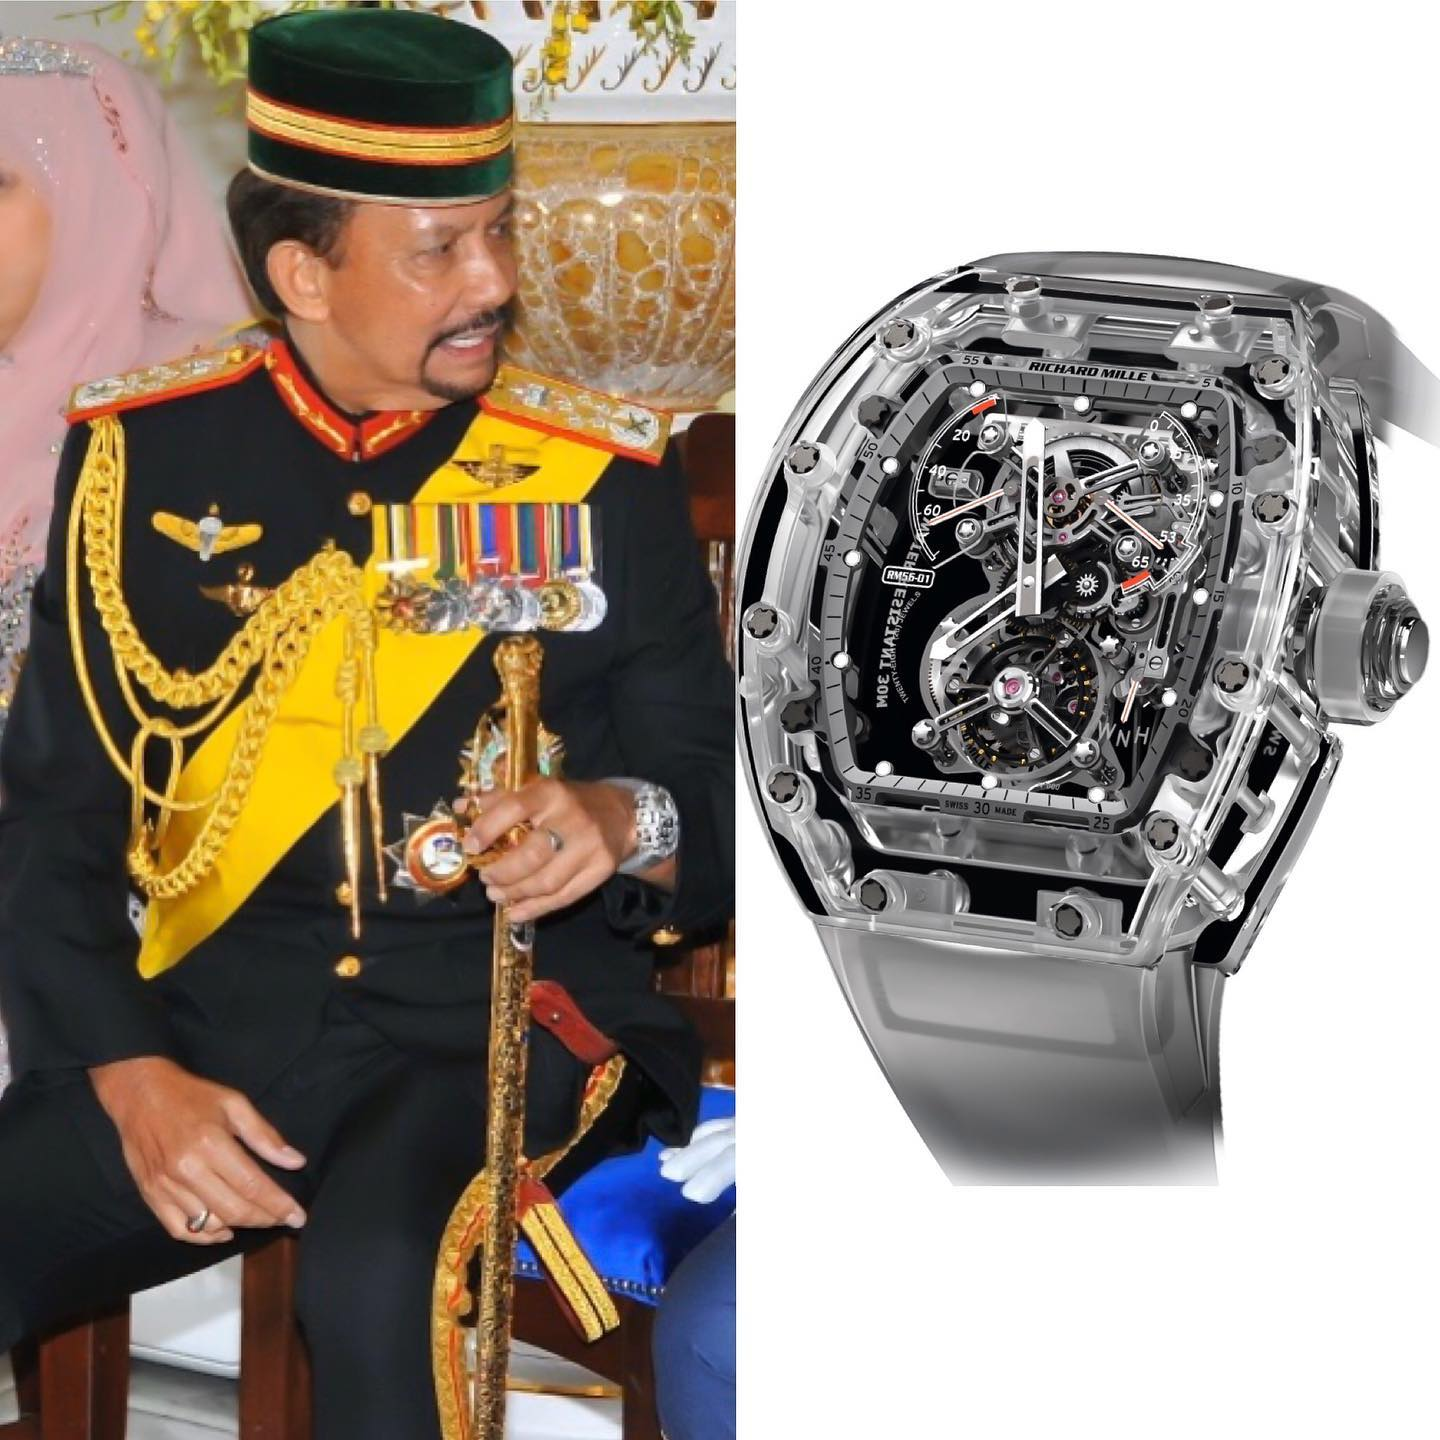 The Sultan of Brunei Hassanal Bolkiah spotted wearing one of only five existing Richard Mille RM 56-01 Tourbillon Sapphire , with the crazy price tag of 2,000,000.00 � 📸 @superwatchman